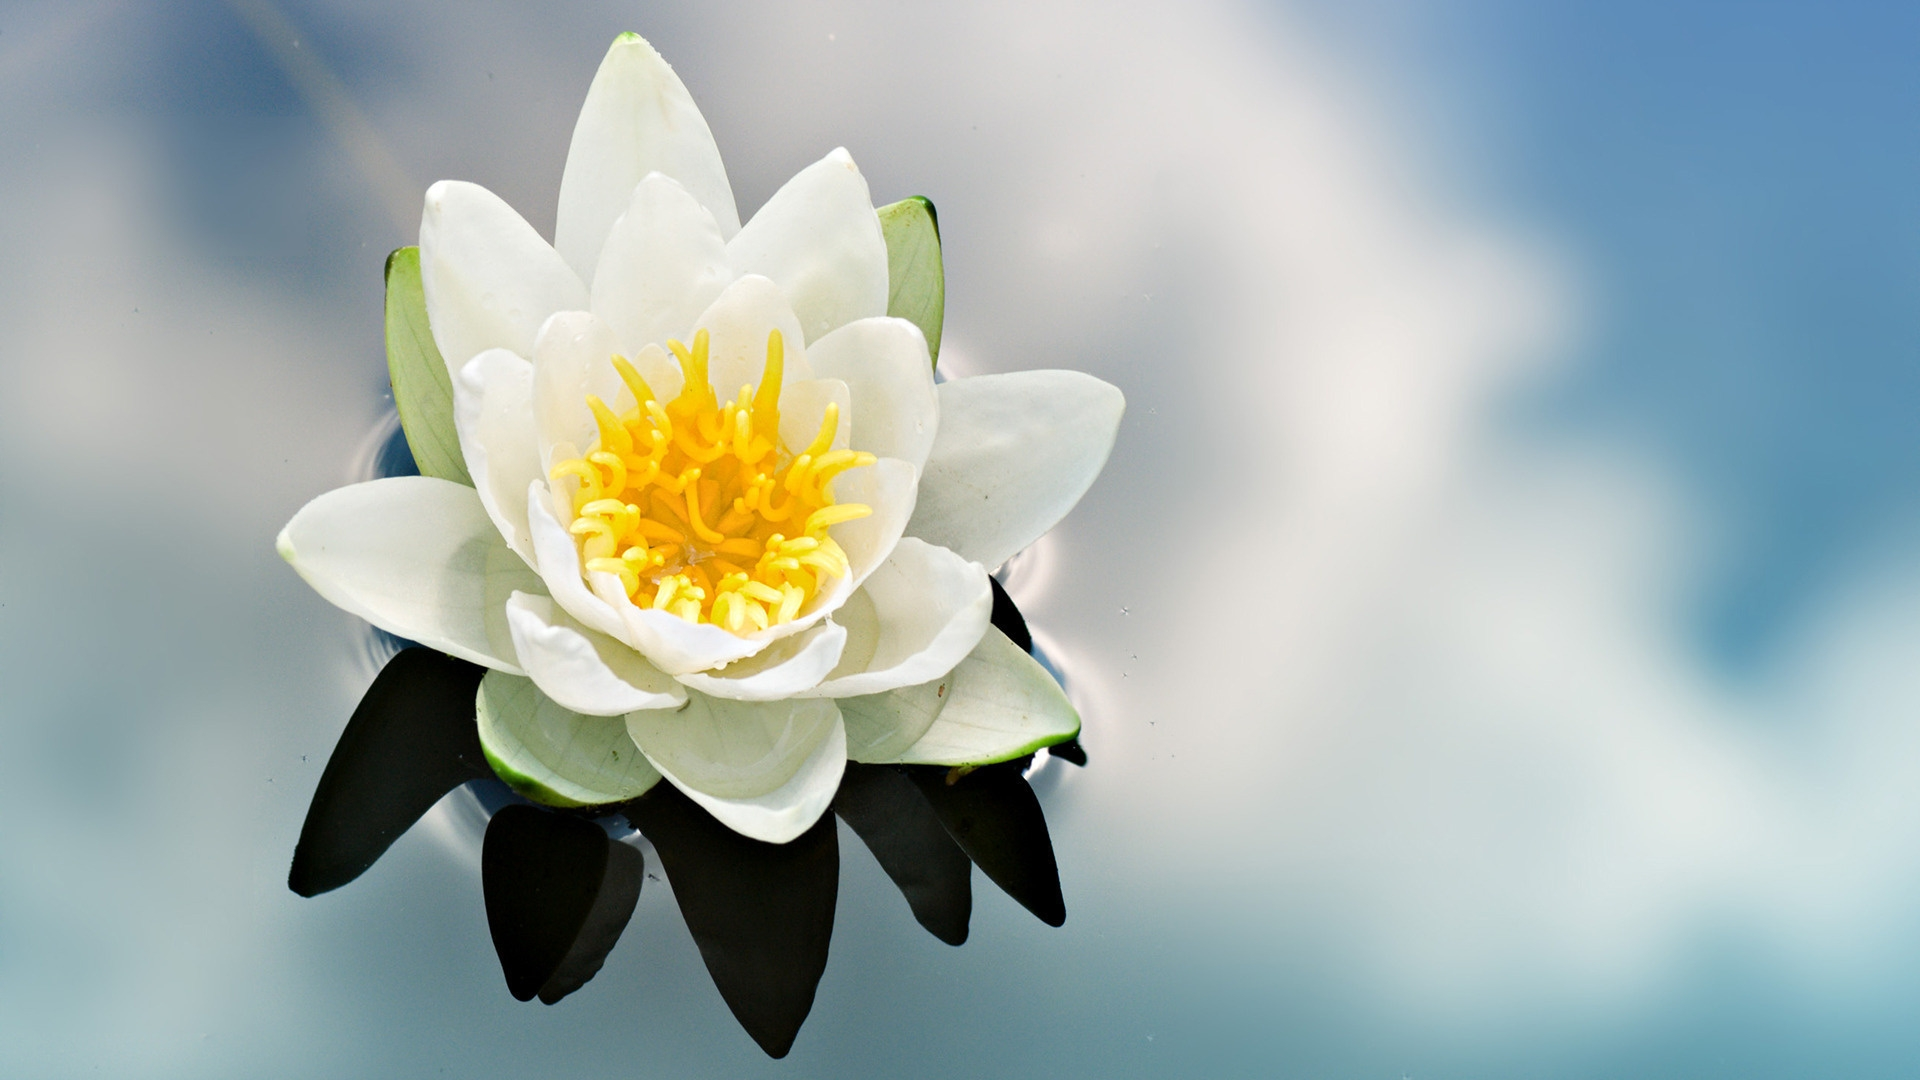 Download wallpaper 1920x1080 lily flower petals water reflection get the latest lily flower petals news pictures and videos and learn all about lily flower petals from wallpapers4u your wallpaper news source izmirmasajfo